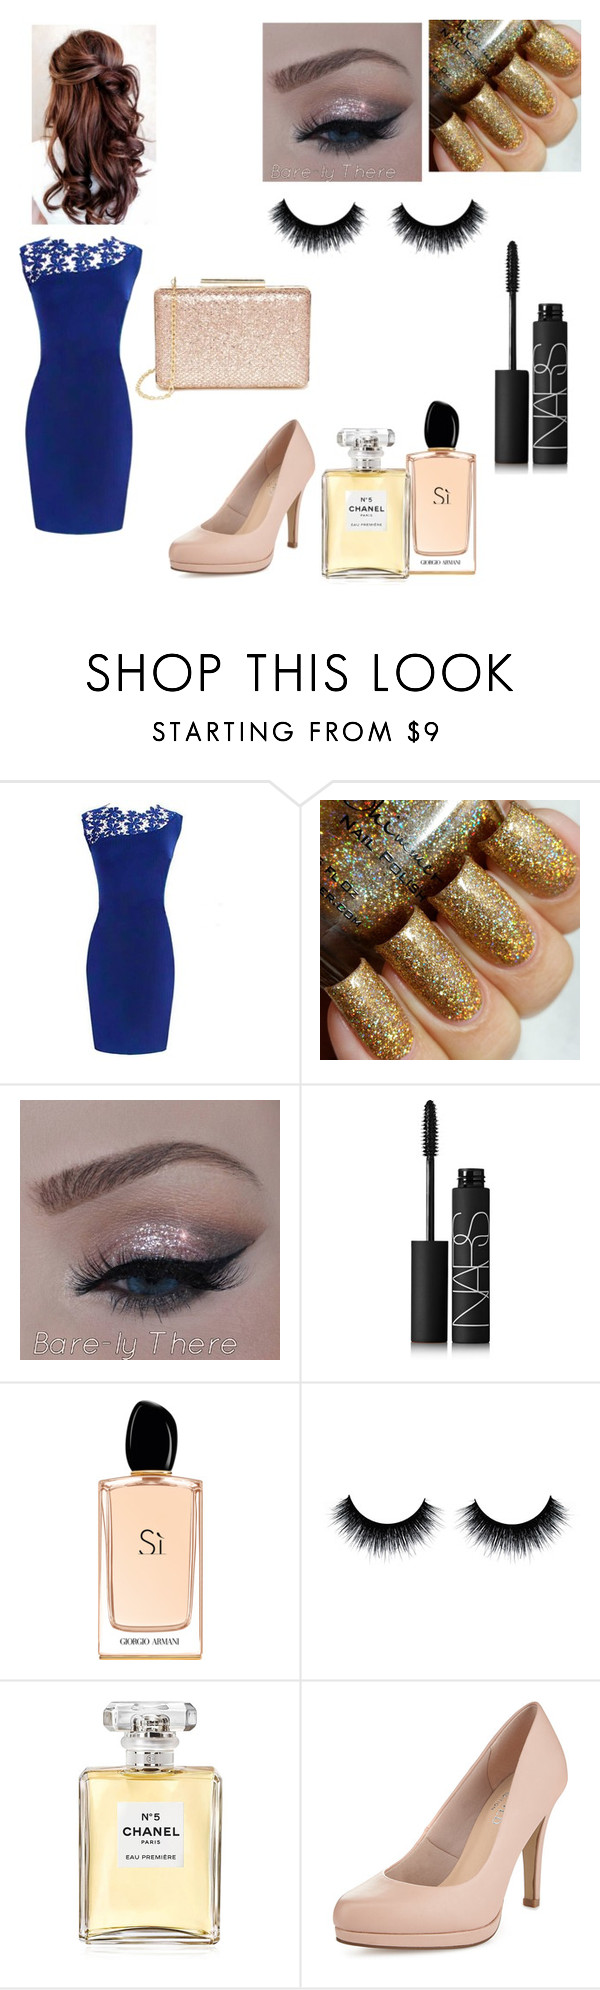 """""""New Year!!<3"""" by fashionfreak1603 ❤ liked on Polyvore featuring NARS Cosmetics, Giorgio Armani, Chanel, Limited Edition, Lulu*s, women's clothing, women's fashion, women, female and woman"""